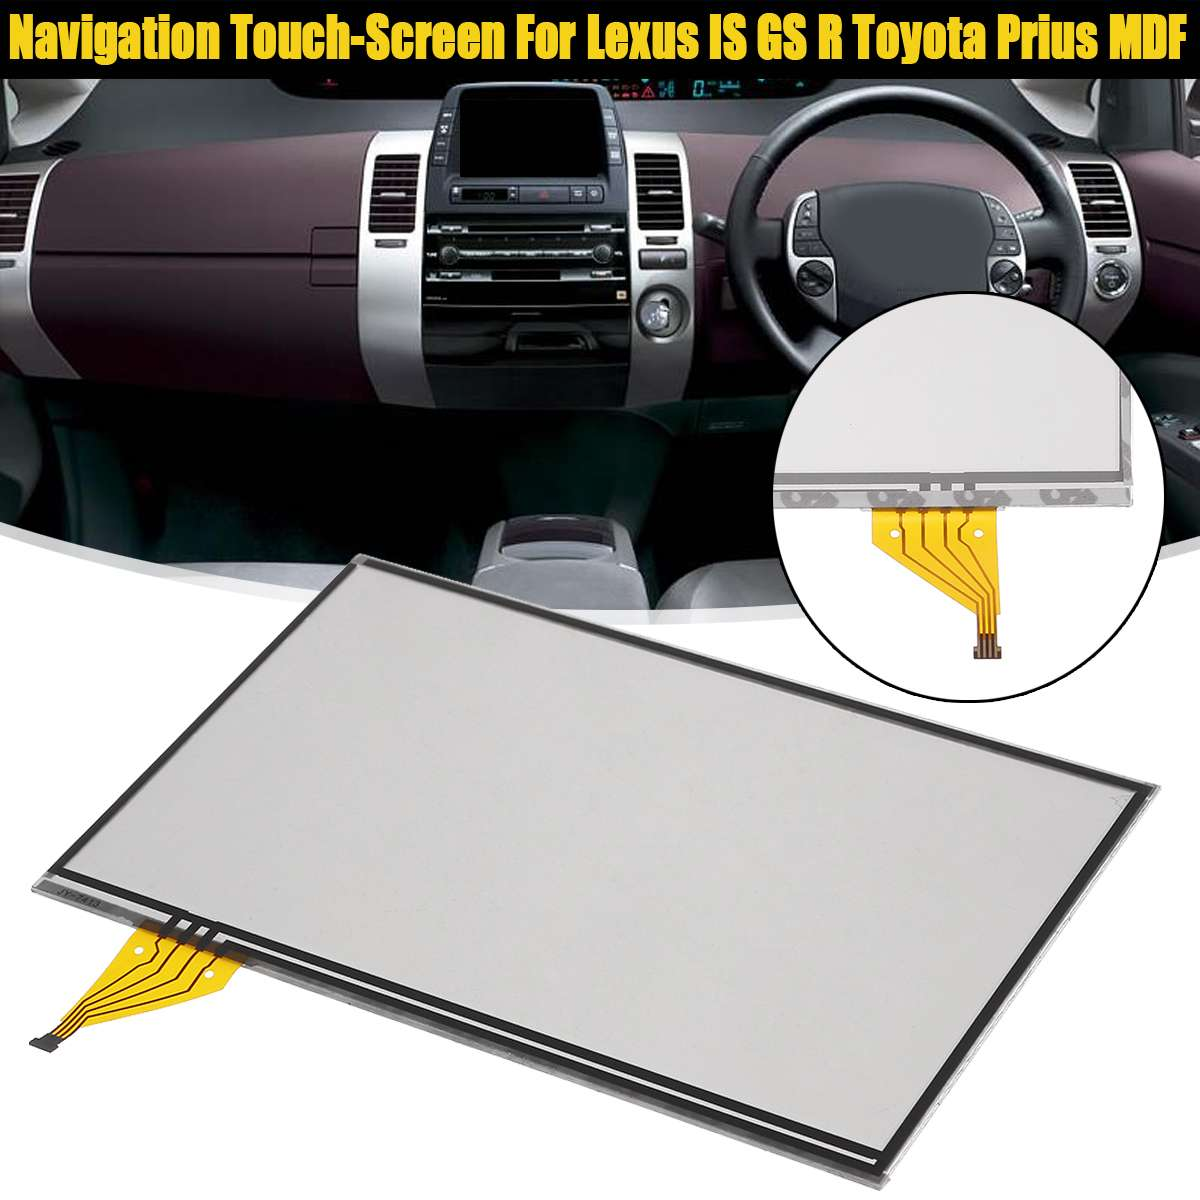 Navigation Touch-Screen Glass Digitizer Lens touch screen For Lexus for Toyota Prius MDF LTA070B512F